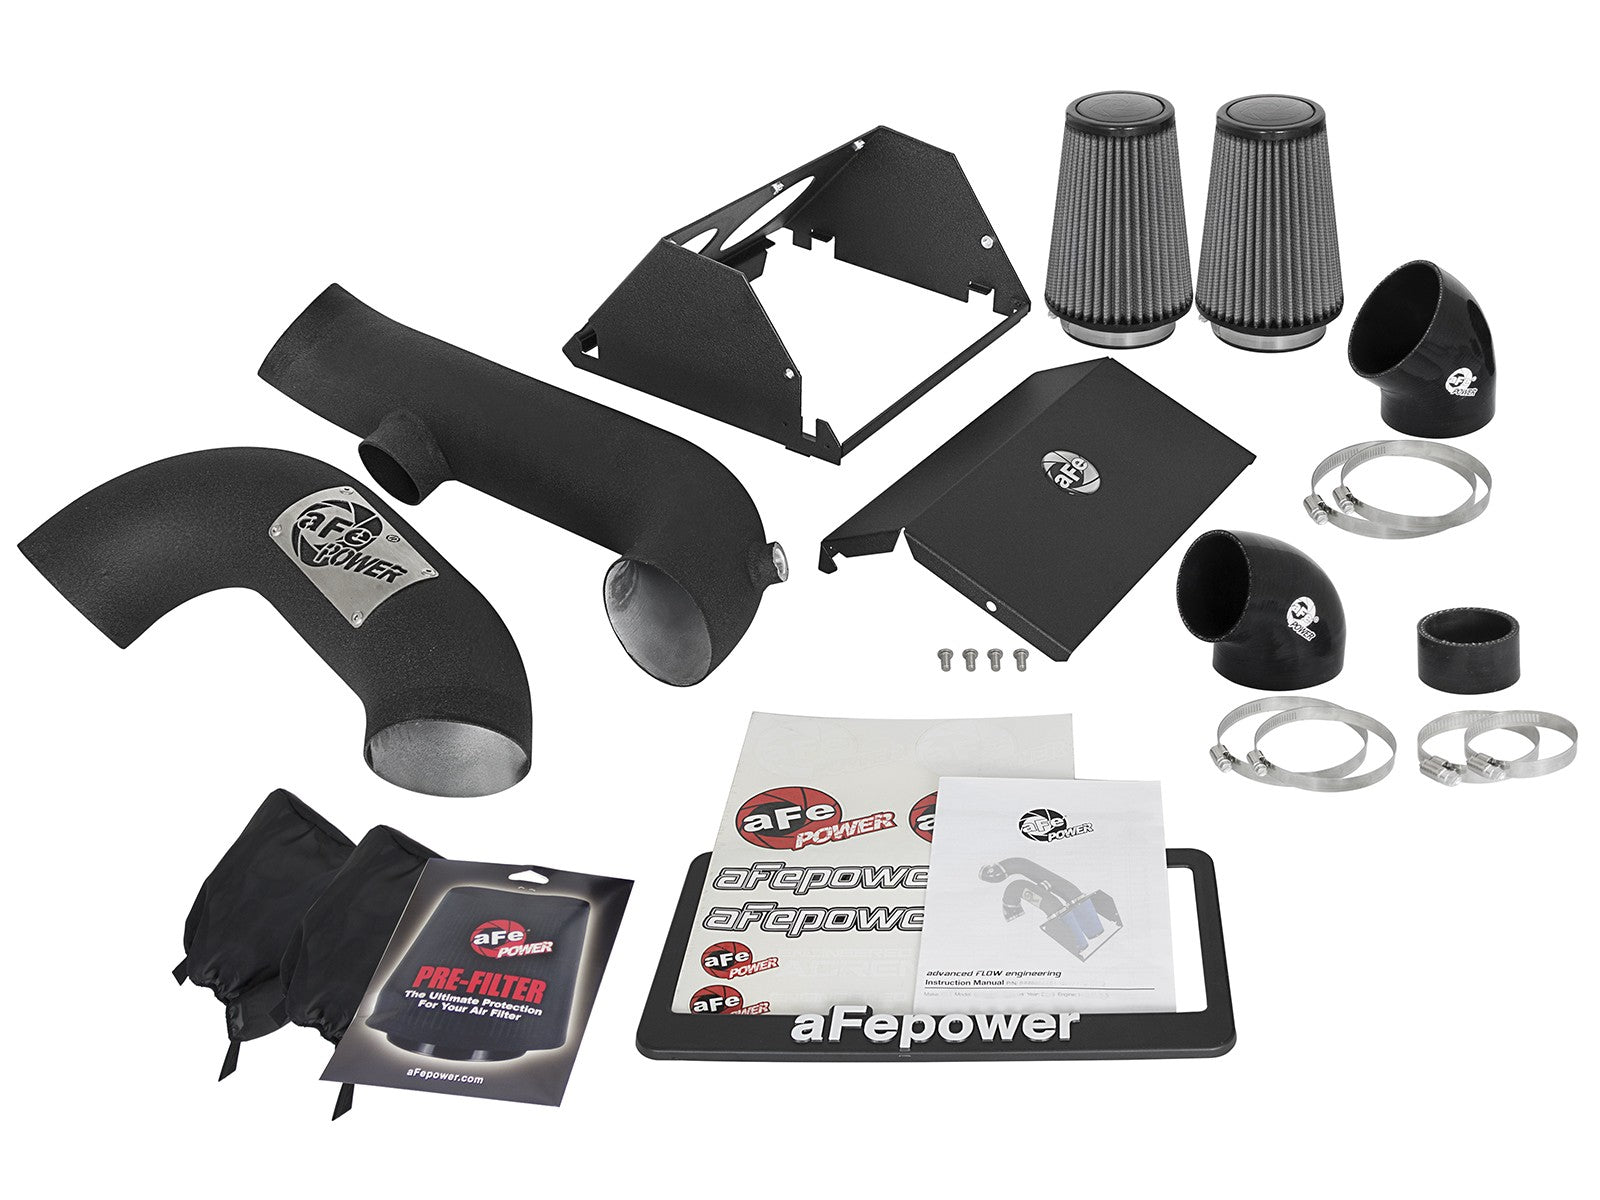 aFe POWER 51-12882-B Magnum FORCE Stage-2 Pro Dry S Cold Air Intake System - Wrinkle Black - Apollo Optics, Inc.